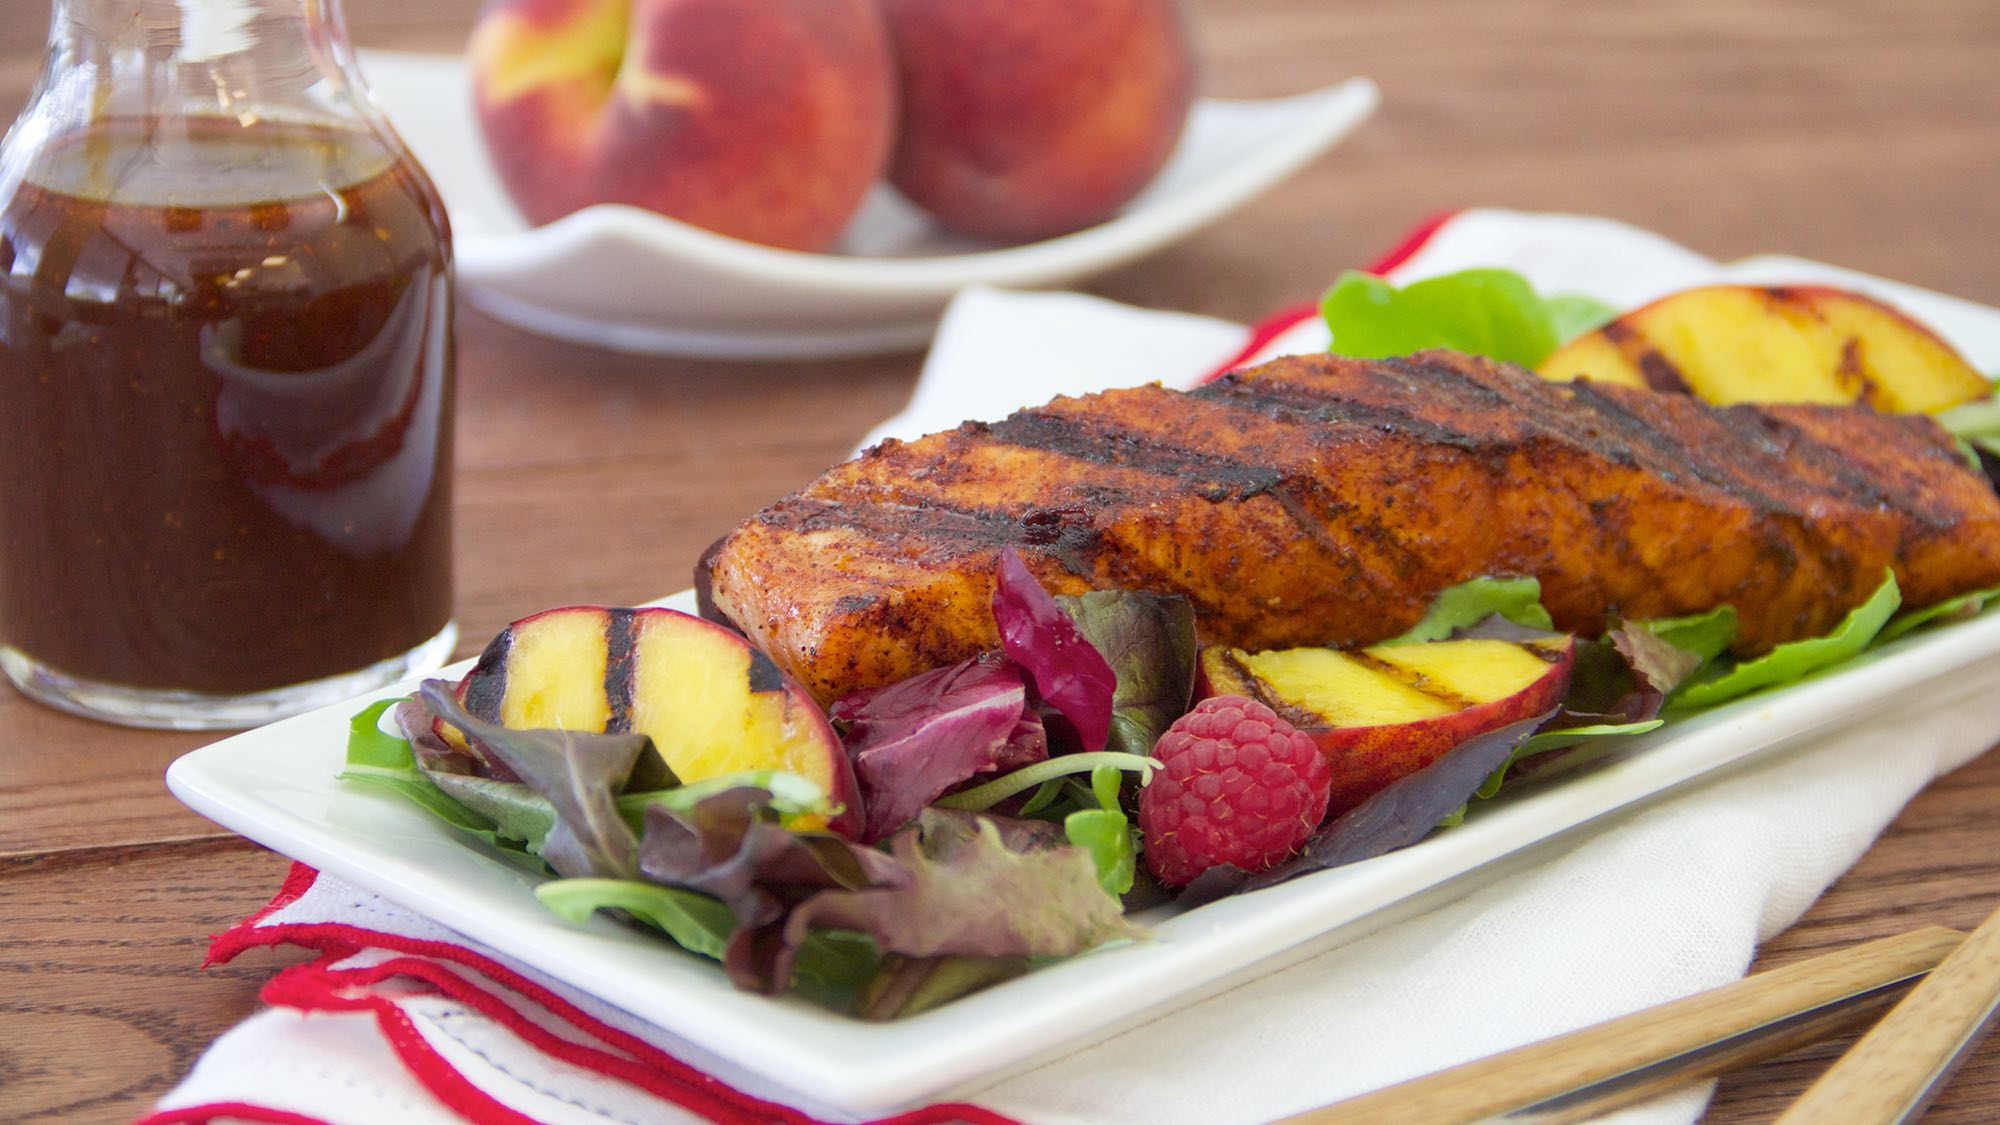 McCormick Gluten Free Sweet Chili Rubbed Salmon with Grilled Peach and Raspberry Salad